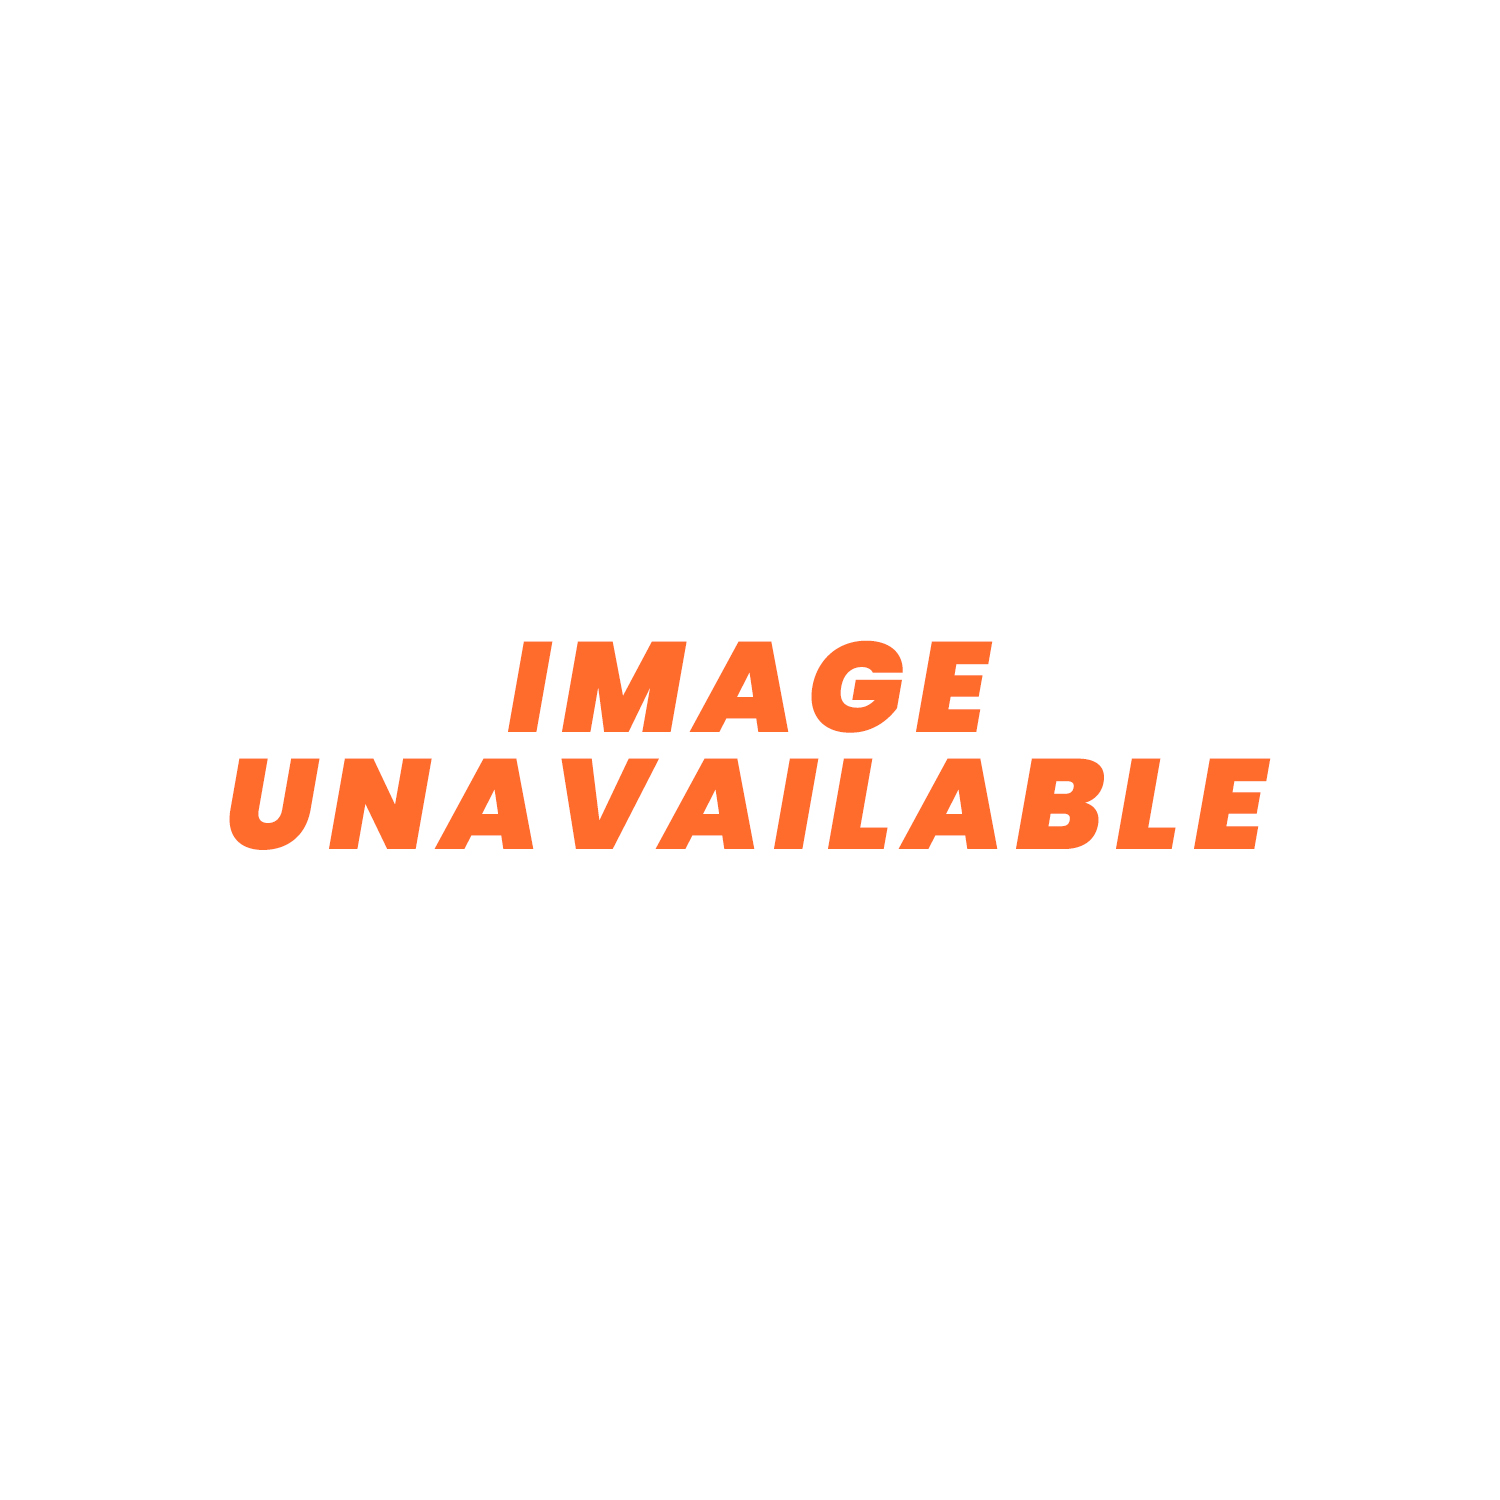 hs2000_cad_model propex gas heater single outlet 12v propex heater wiring diagram at alyssarenee.co